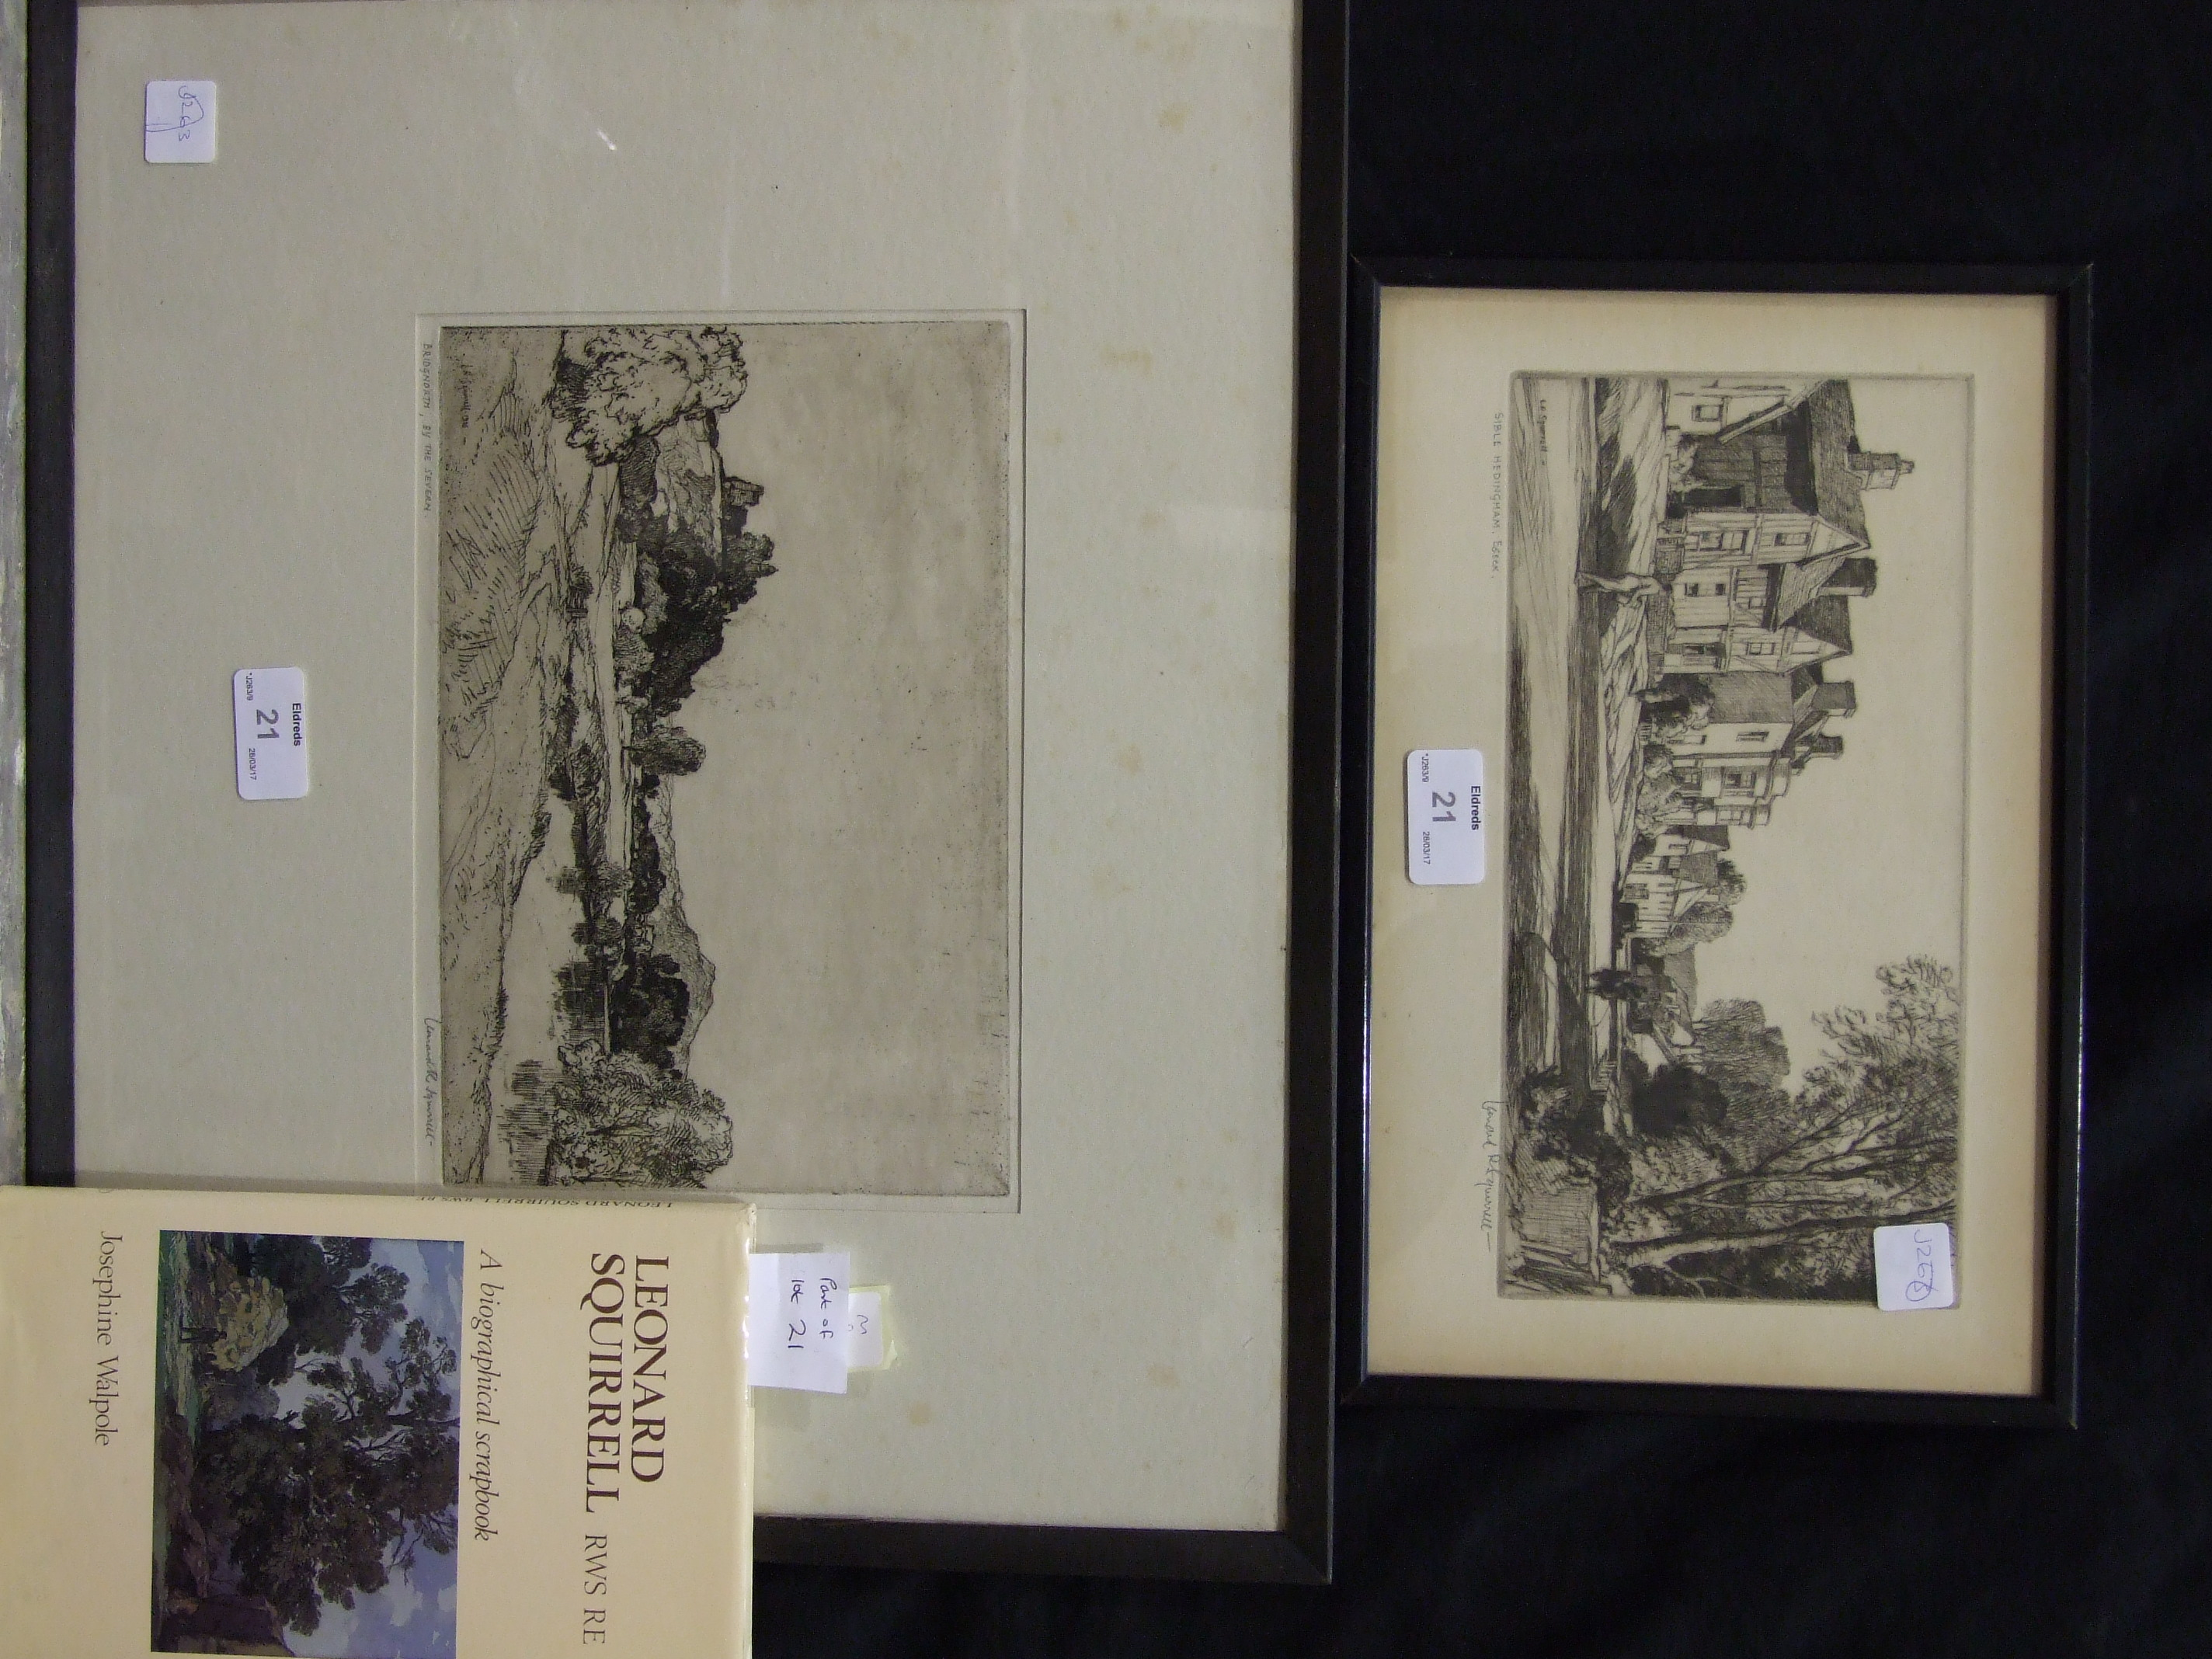 """Lot 21 - After Leonard R Squirrell, """"Bridgenorth by the Severn"""" Engraving, signed and titled in margin, 17."""